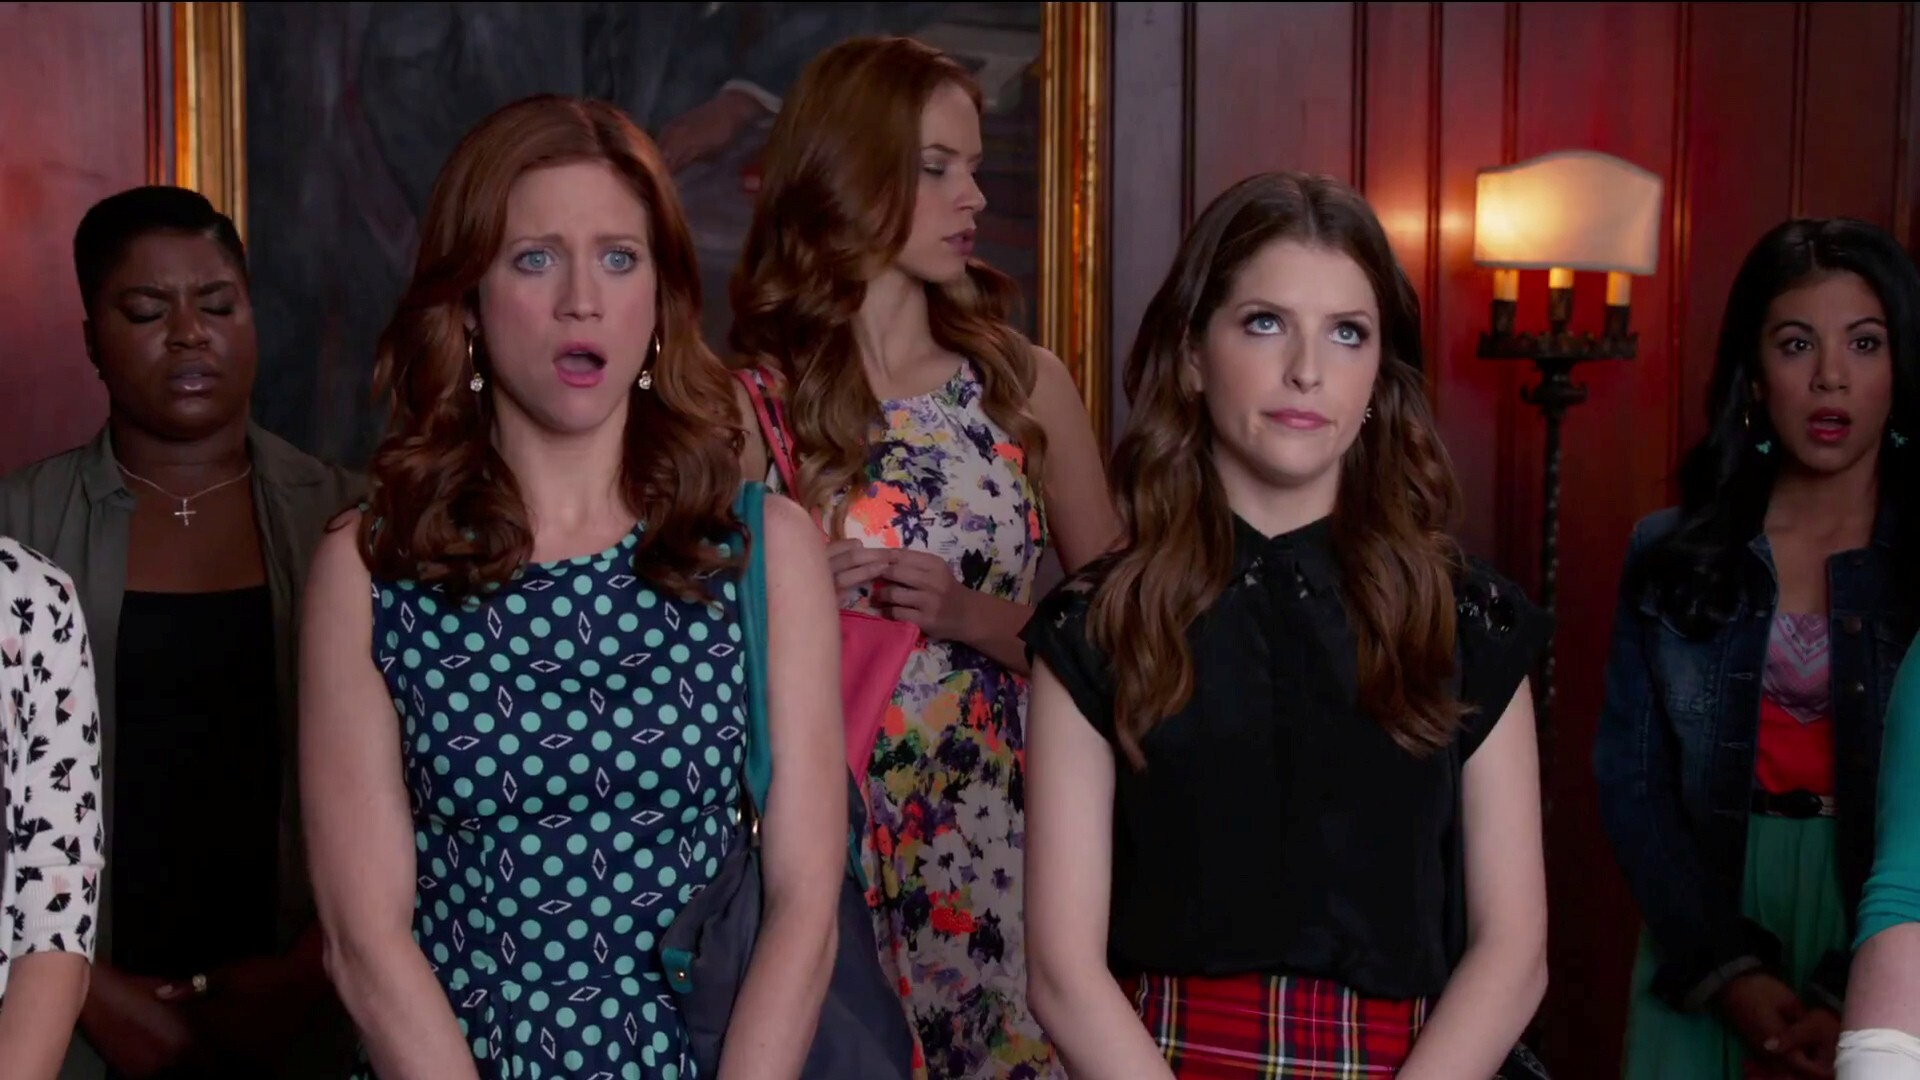 Anna Kendrick In Pitch Perfect 2 Latest Hollywood Film Wallpaper